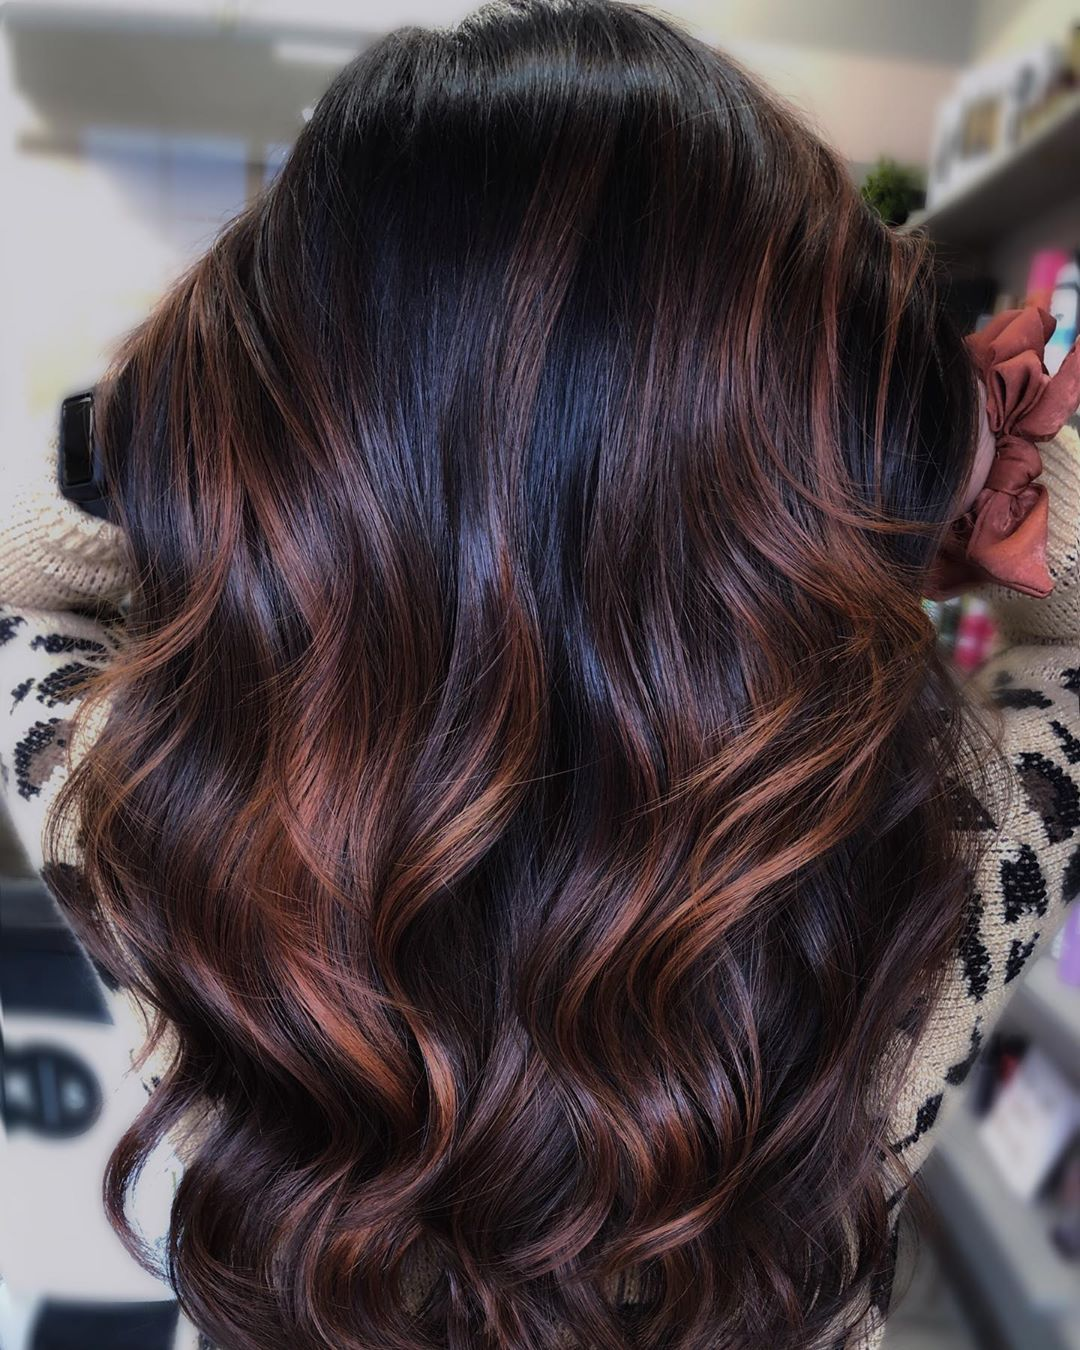 50 Trendy Brown Hair Colors And Brunette Hairstyles For 2020 Hair Adviser Brunette Hair Color Dark Hair With Highlights Brown Hair With Highlights